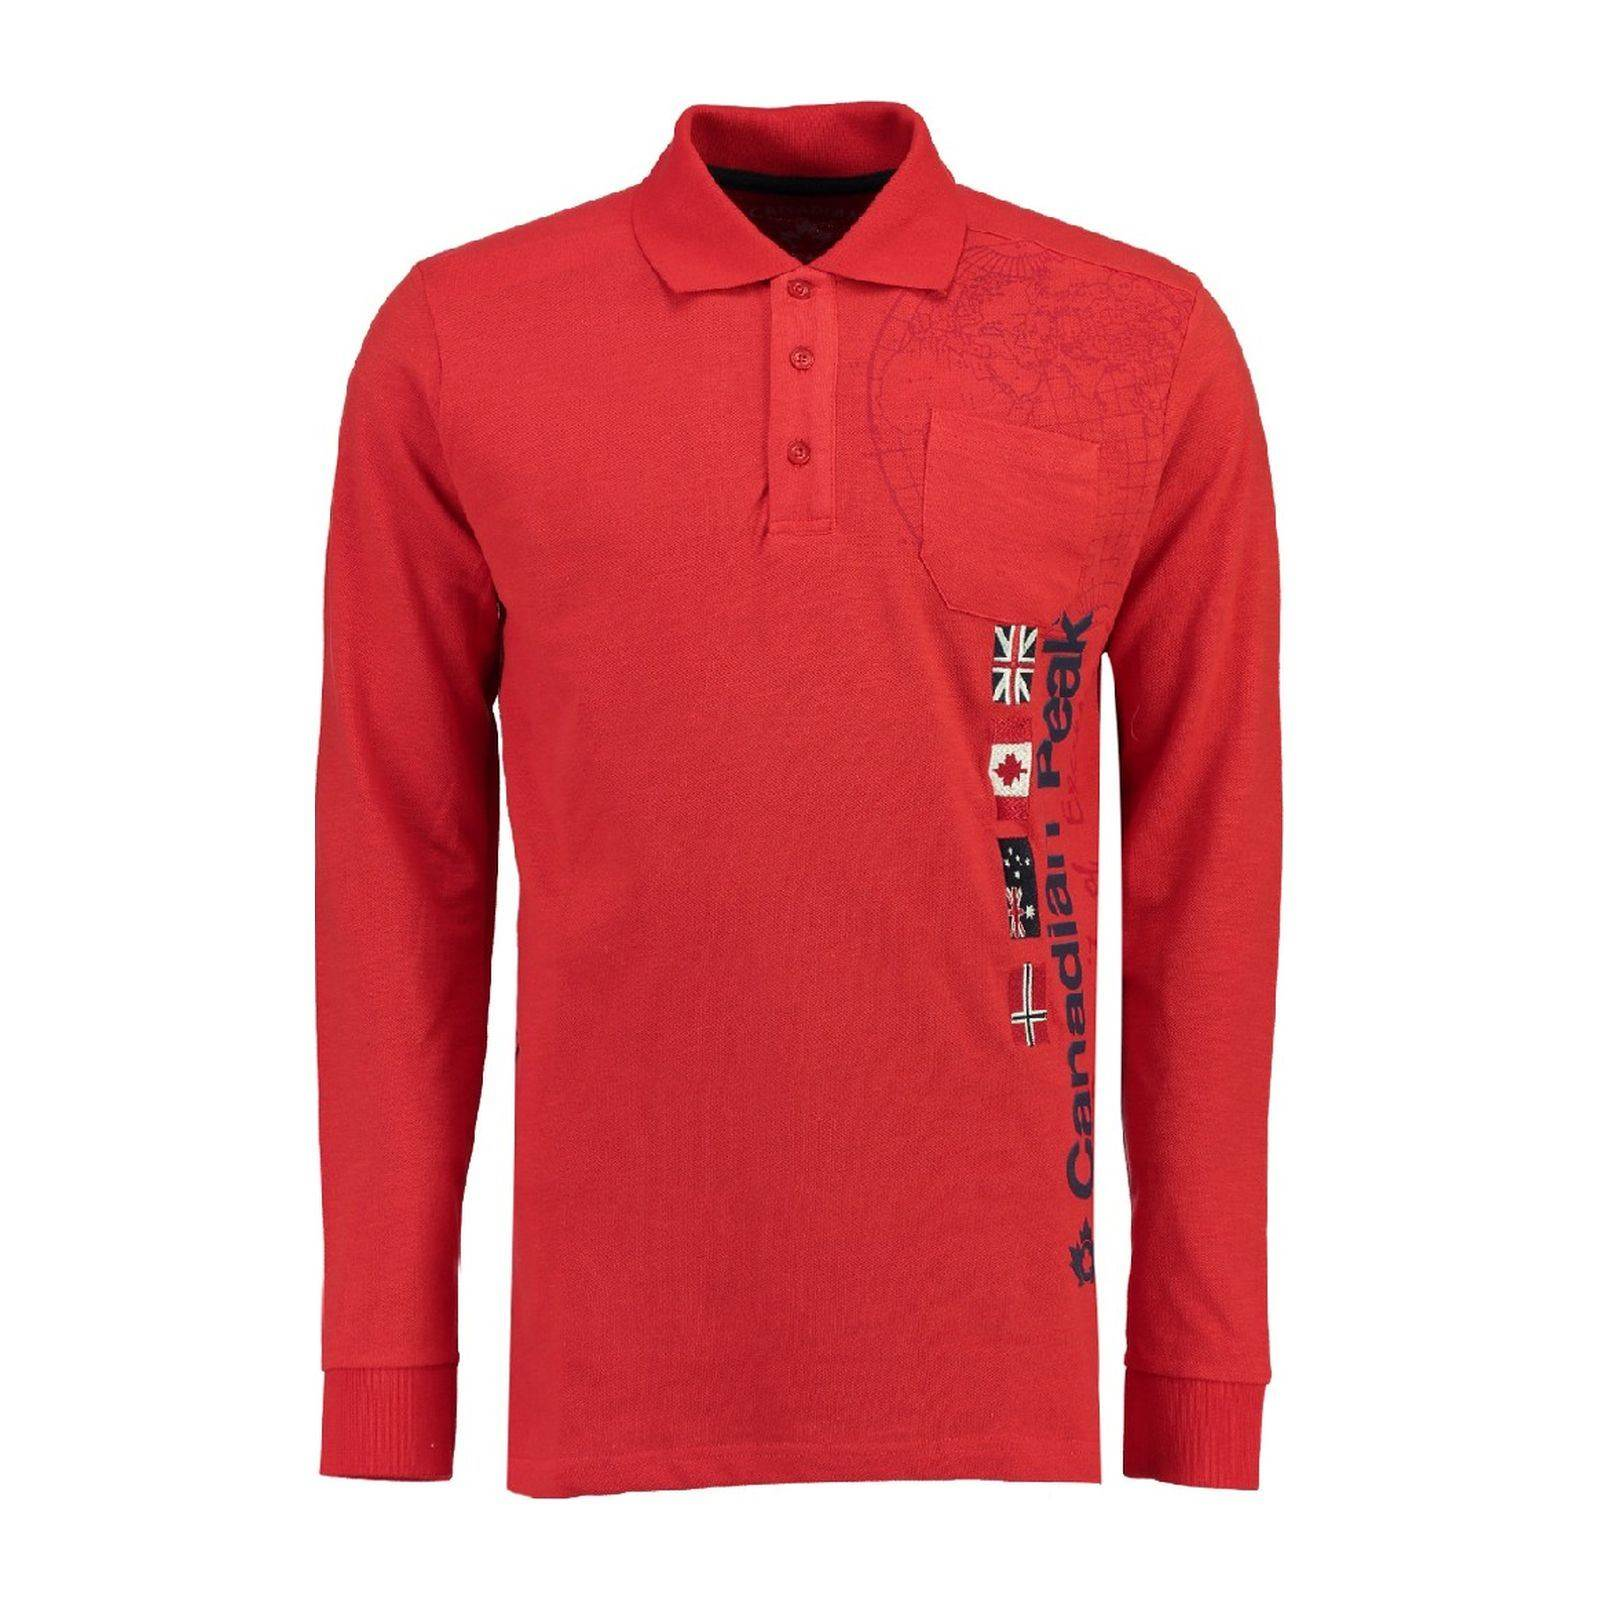 Rouge Homme V 100 Cp 2600Polo Longues Canadian Manches Kazz Peak mO8Nw0vn